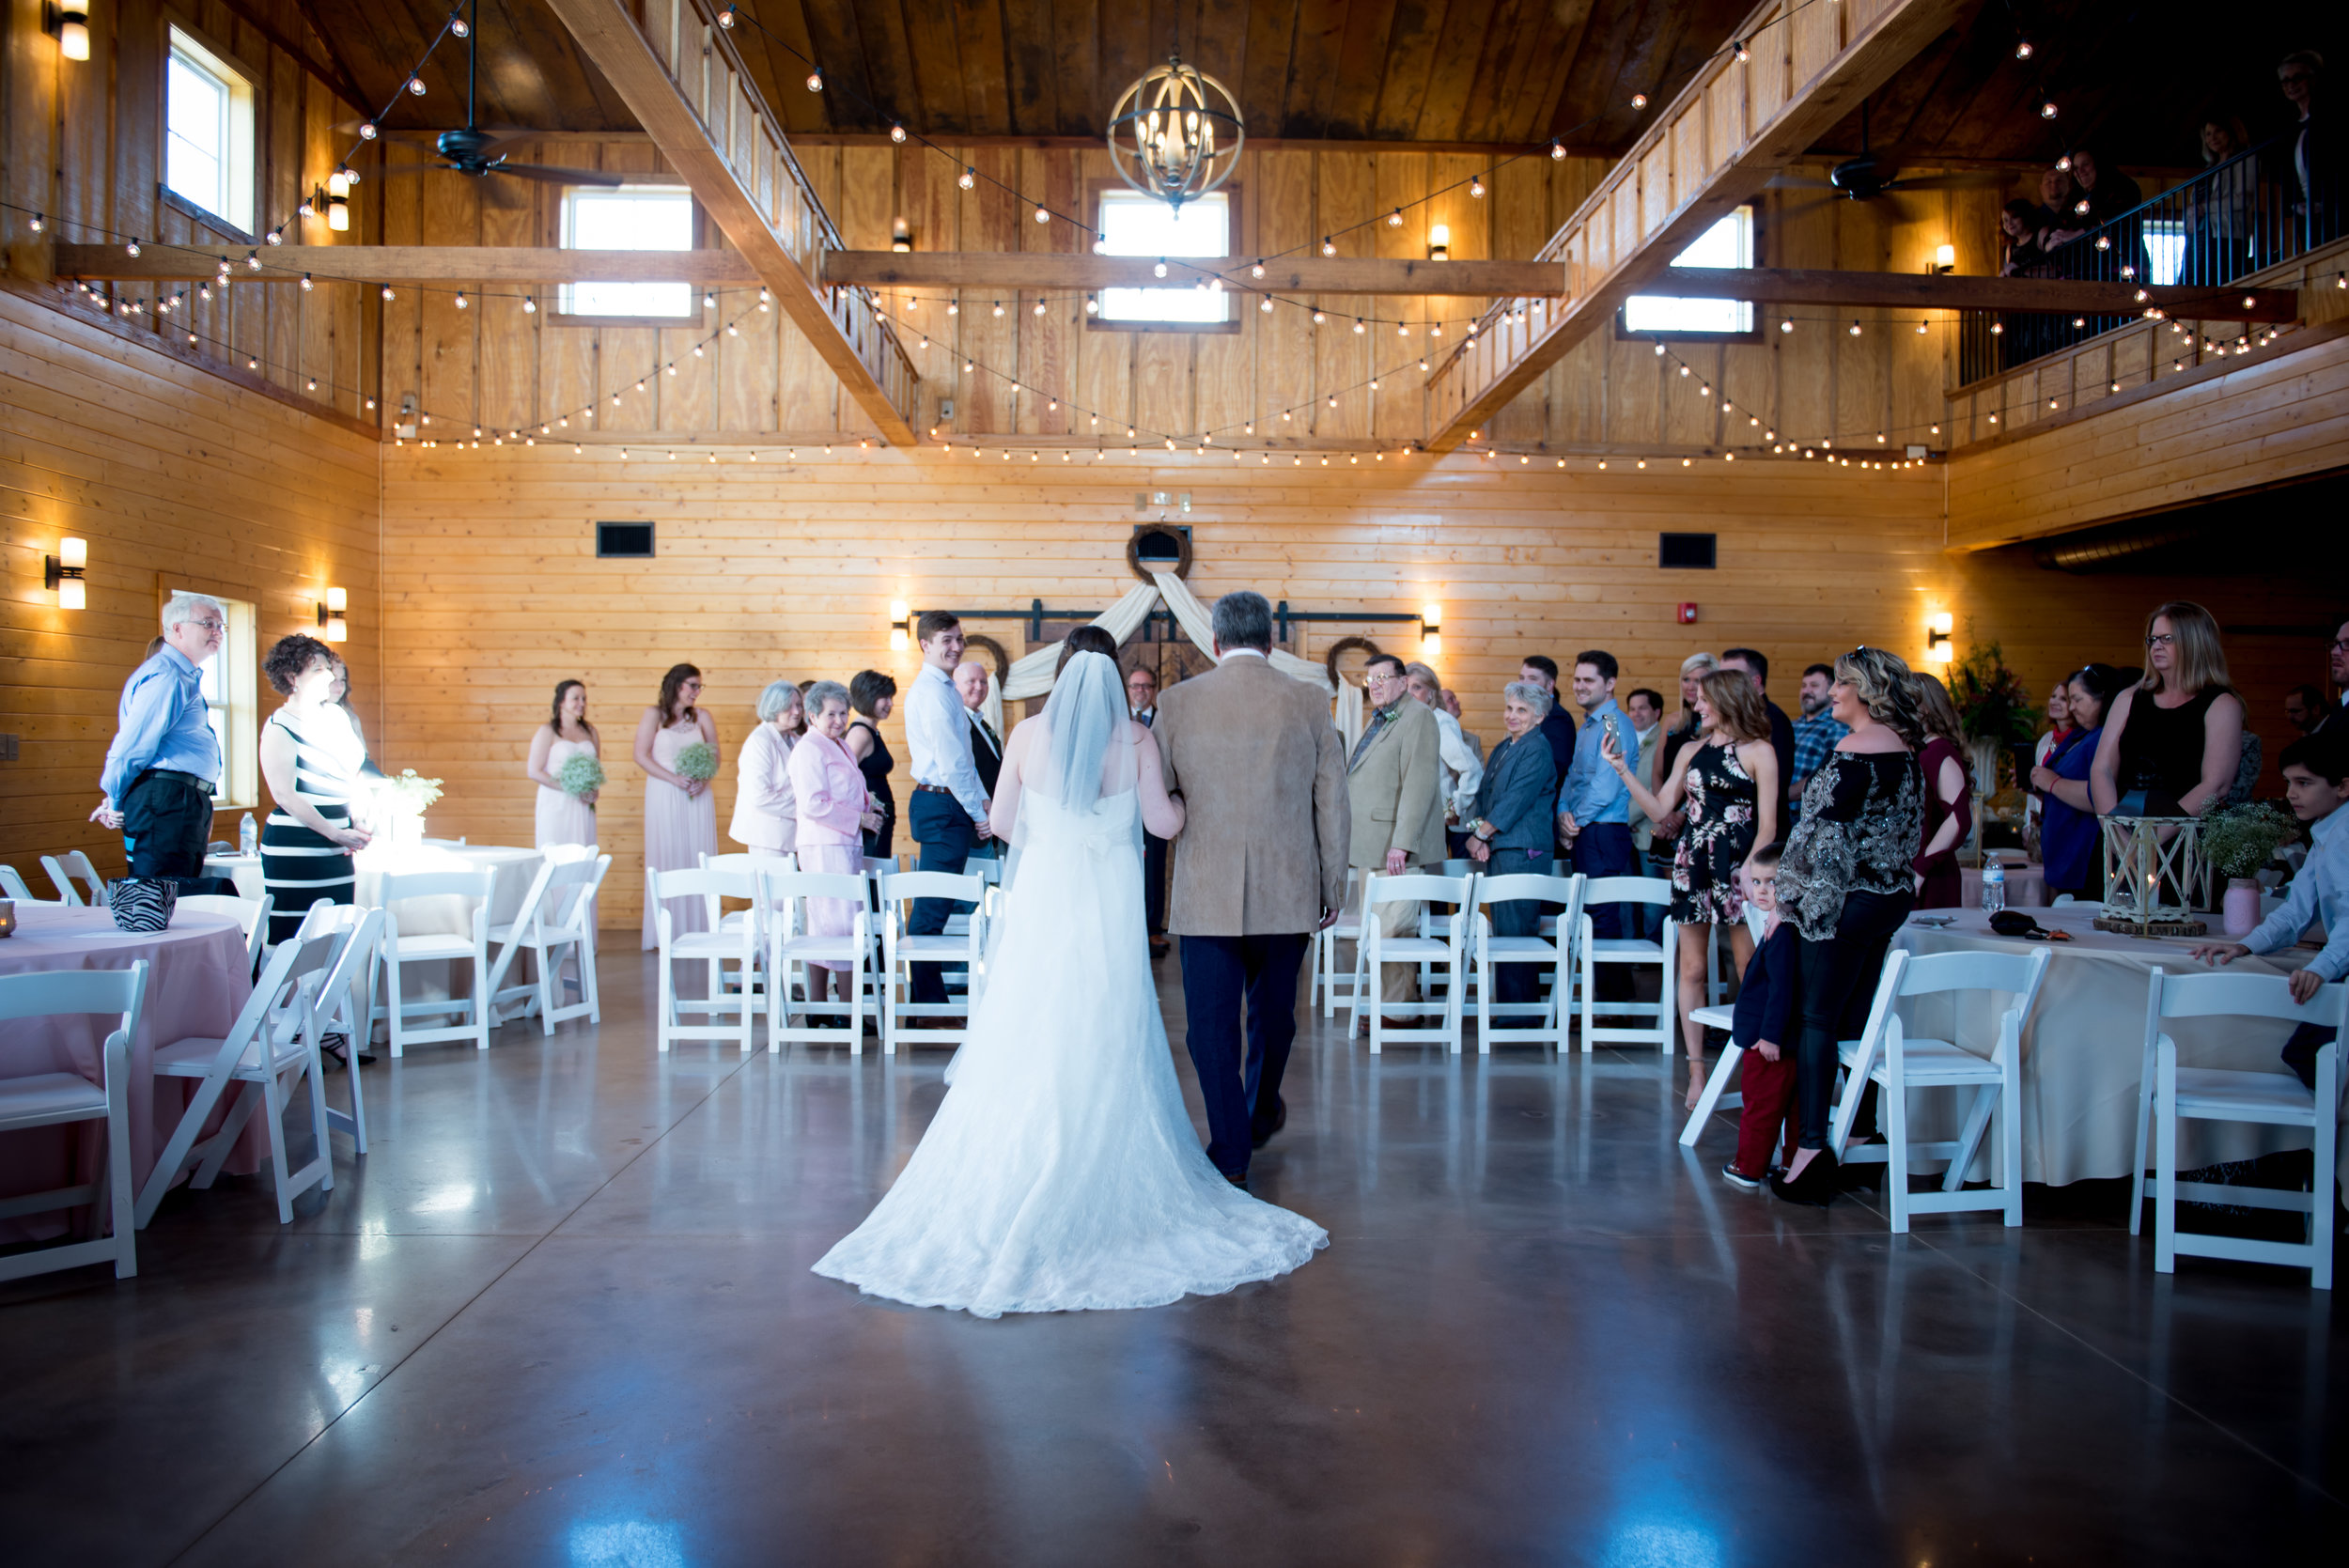 Photo by Brian Dean Photography. Wedding on February 17, 2017.